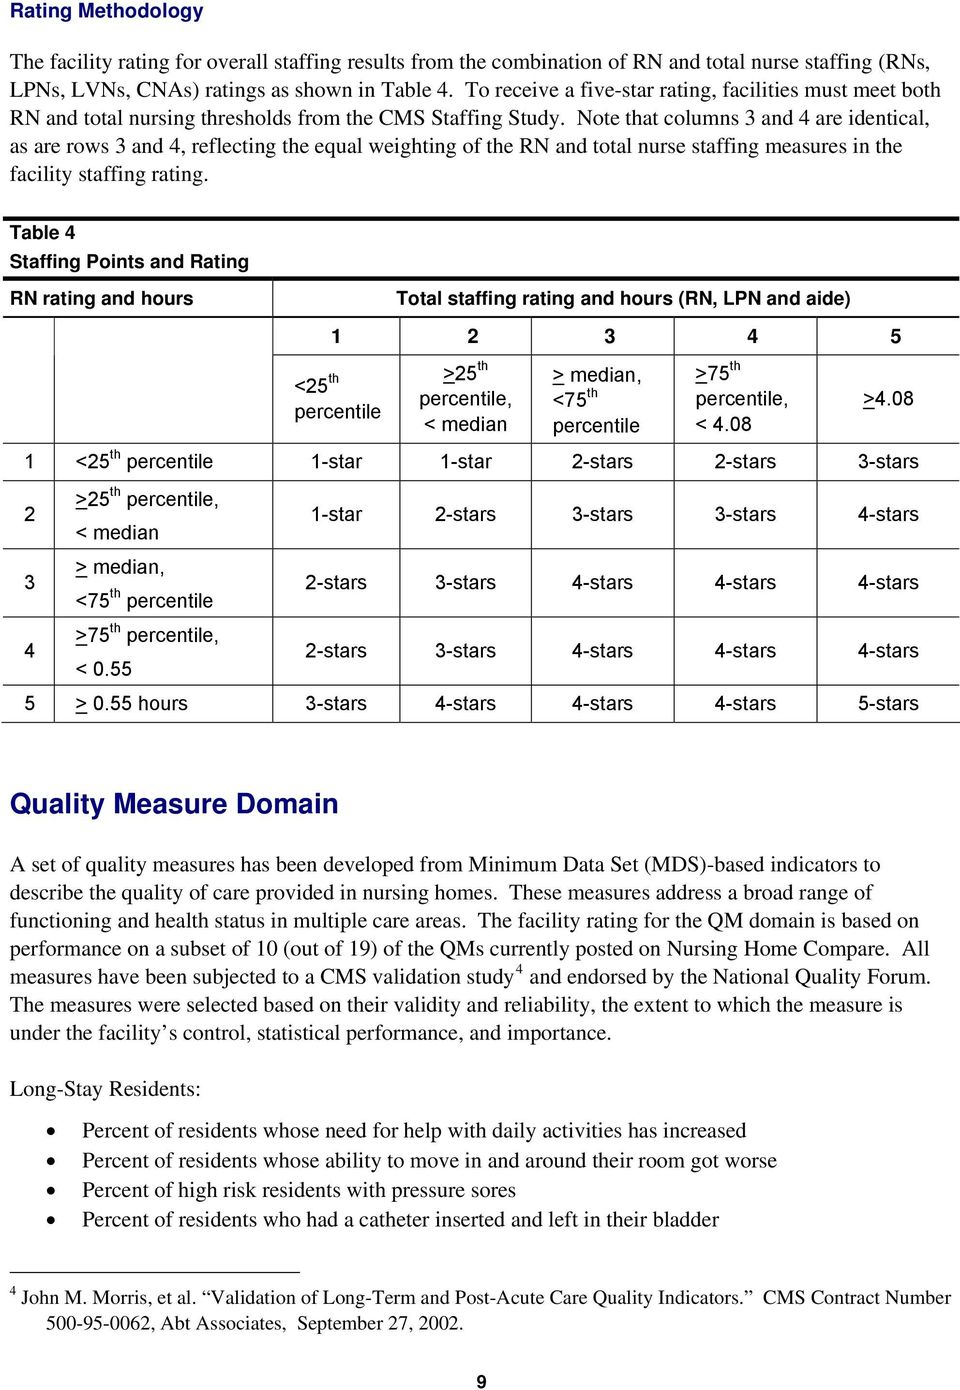 Note that columns 3 and 4 are identical, as are rows 3 and 4, reflecting the equal weighting of the RN and total nurse staffing measures in the facility staffing rating.